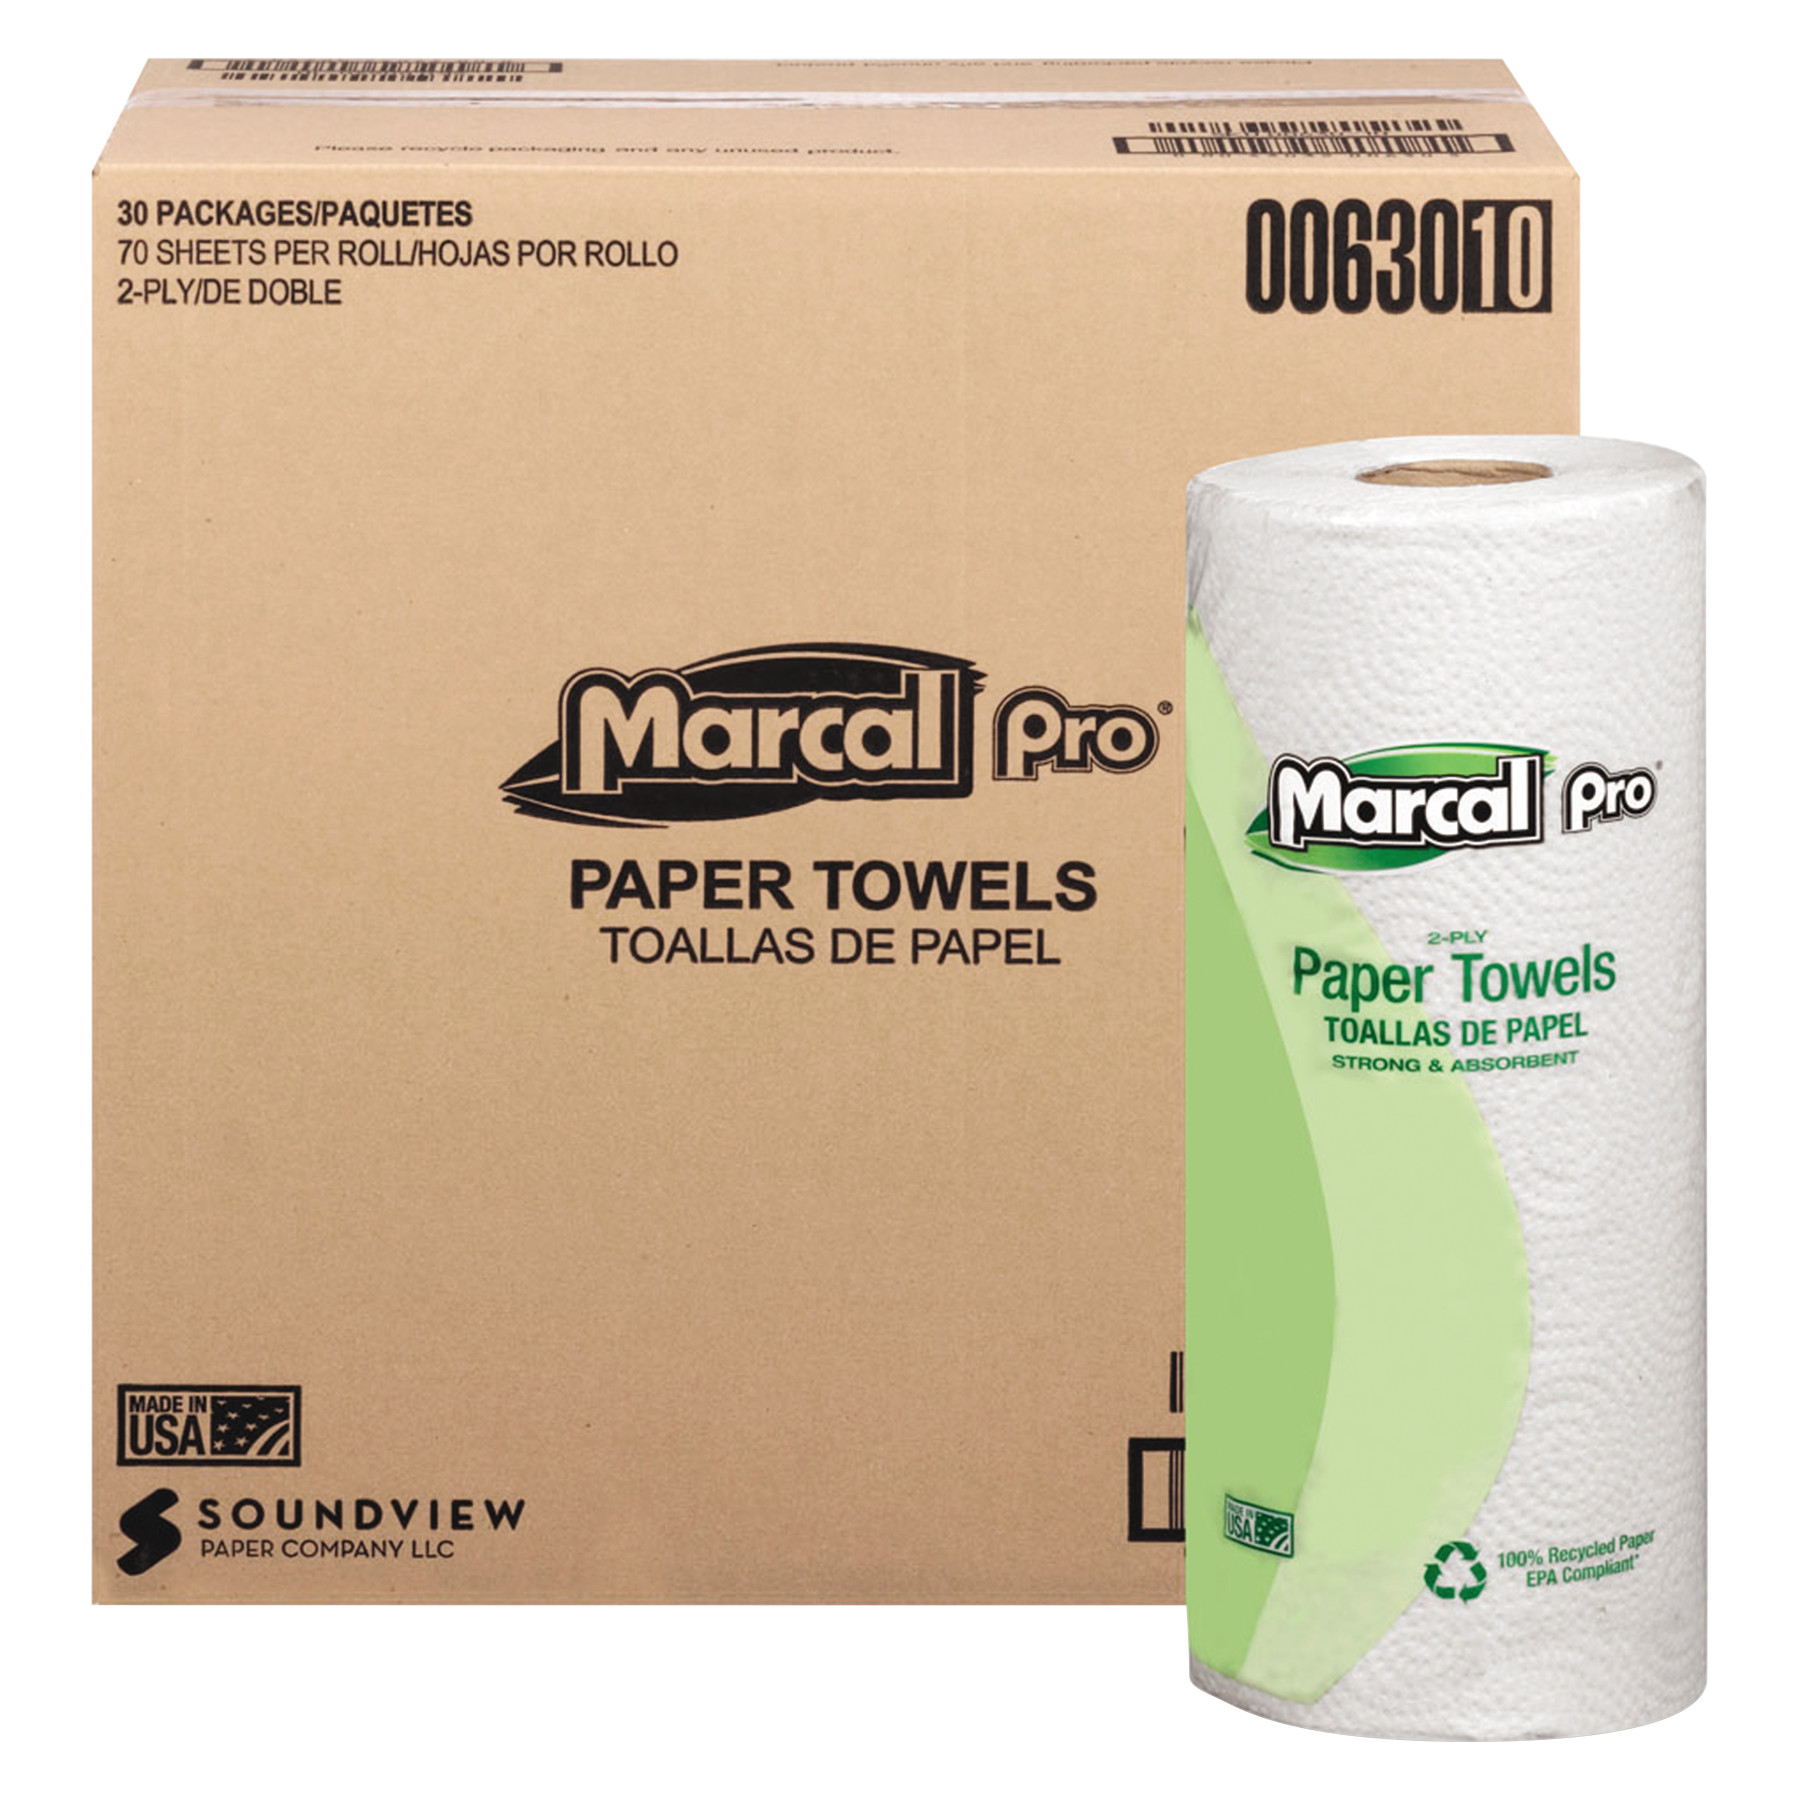 Marcal PRO 100% Premium Recycled Towels, 2-Ply, 11 x 9, White, 70/Roll, 30 Rolls/Carton